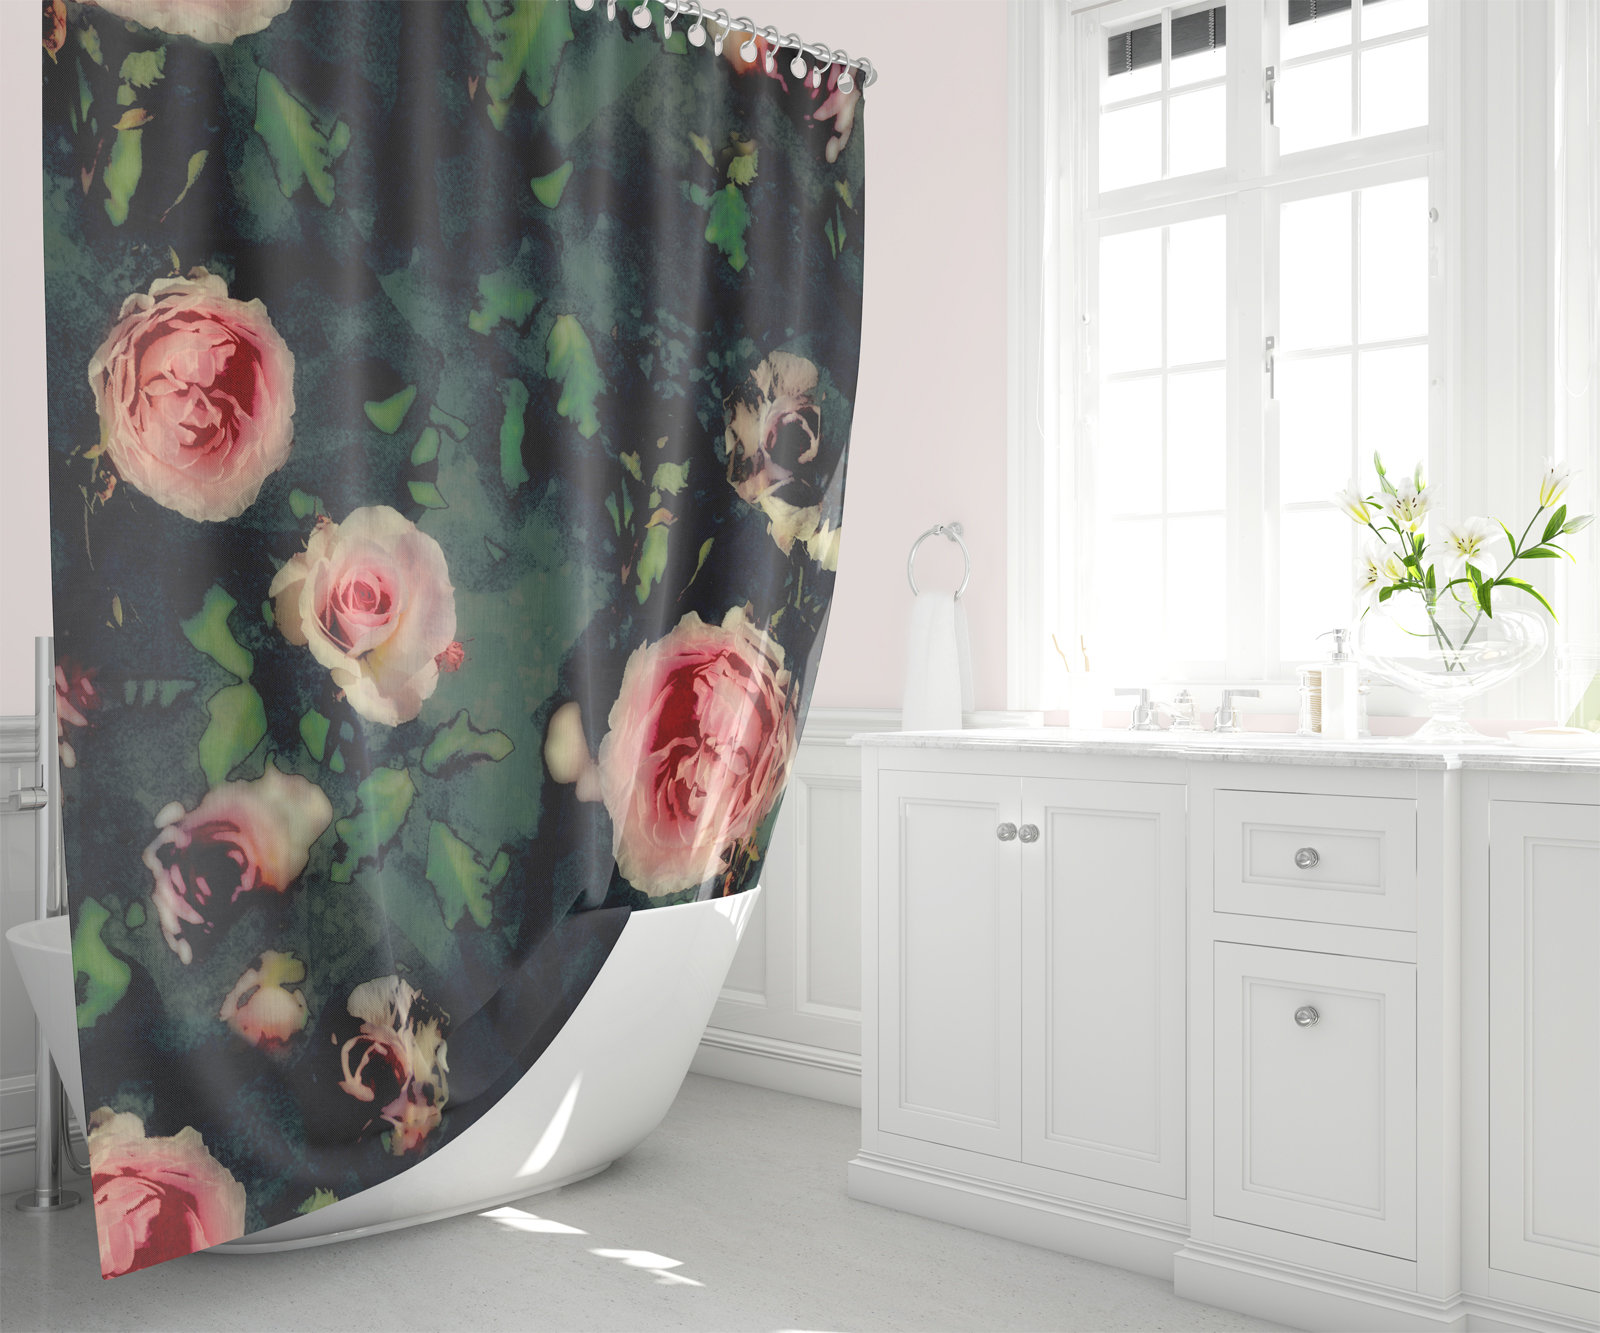 Big Pink Roses Dark Green Fabric Shower Curtain Graphic Roses Green Leaves Bathroom Decor